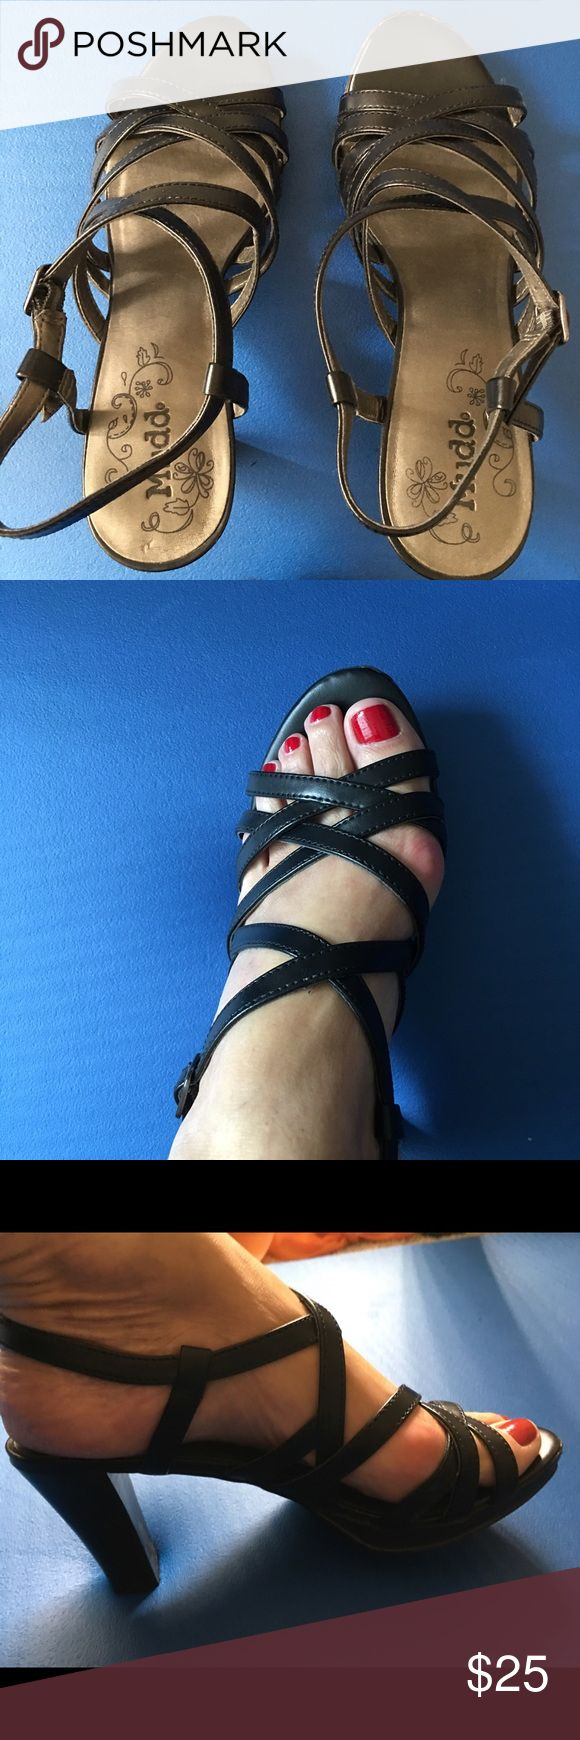 Shoes - Mudd dressy sandals Beautiful black dressy sandals. Excellent condition - worn once. Can't wear heels due to surgery. Mudd Shoes Sandals